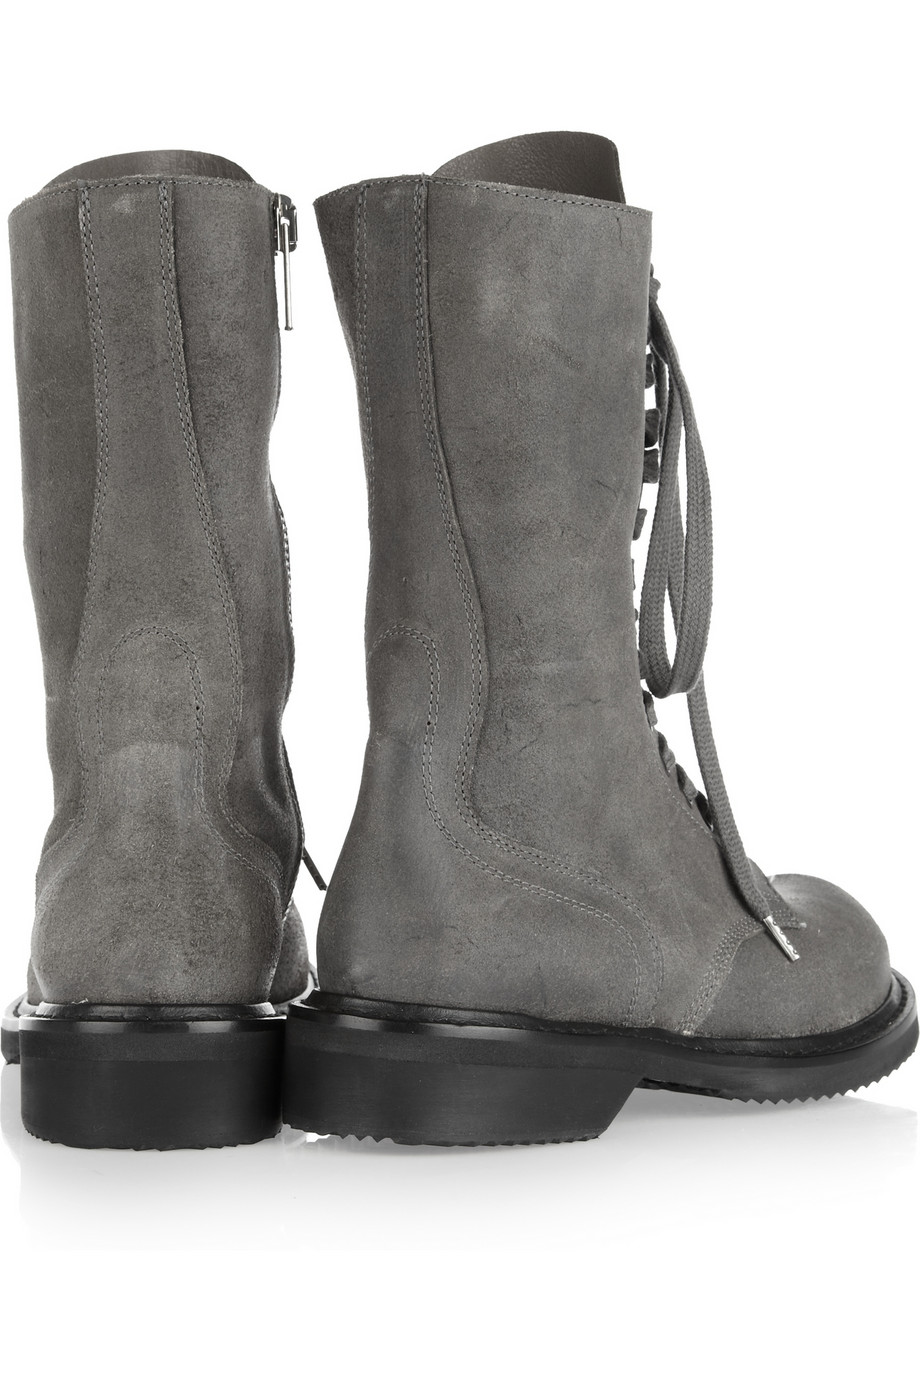 Lyst Rick Owens Distressed Leather Combat Boots In Gray